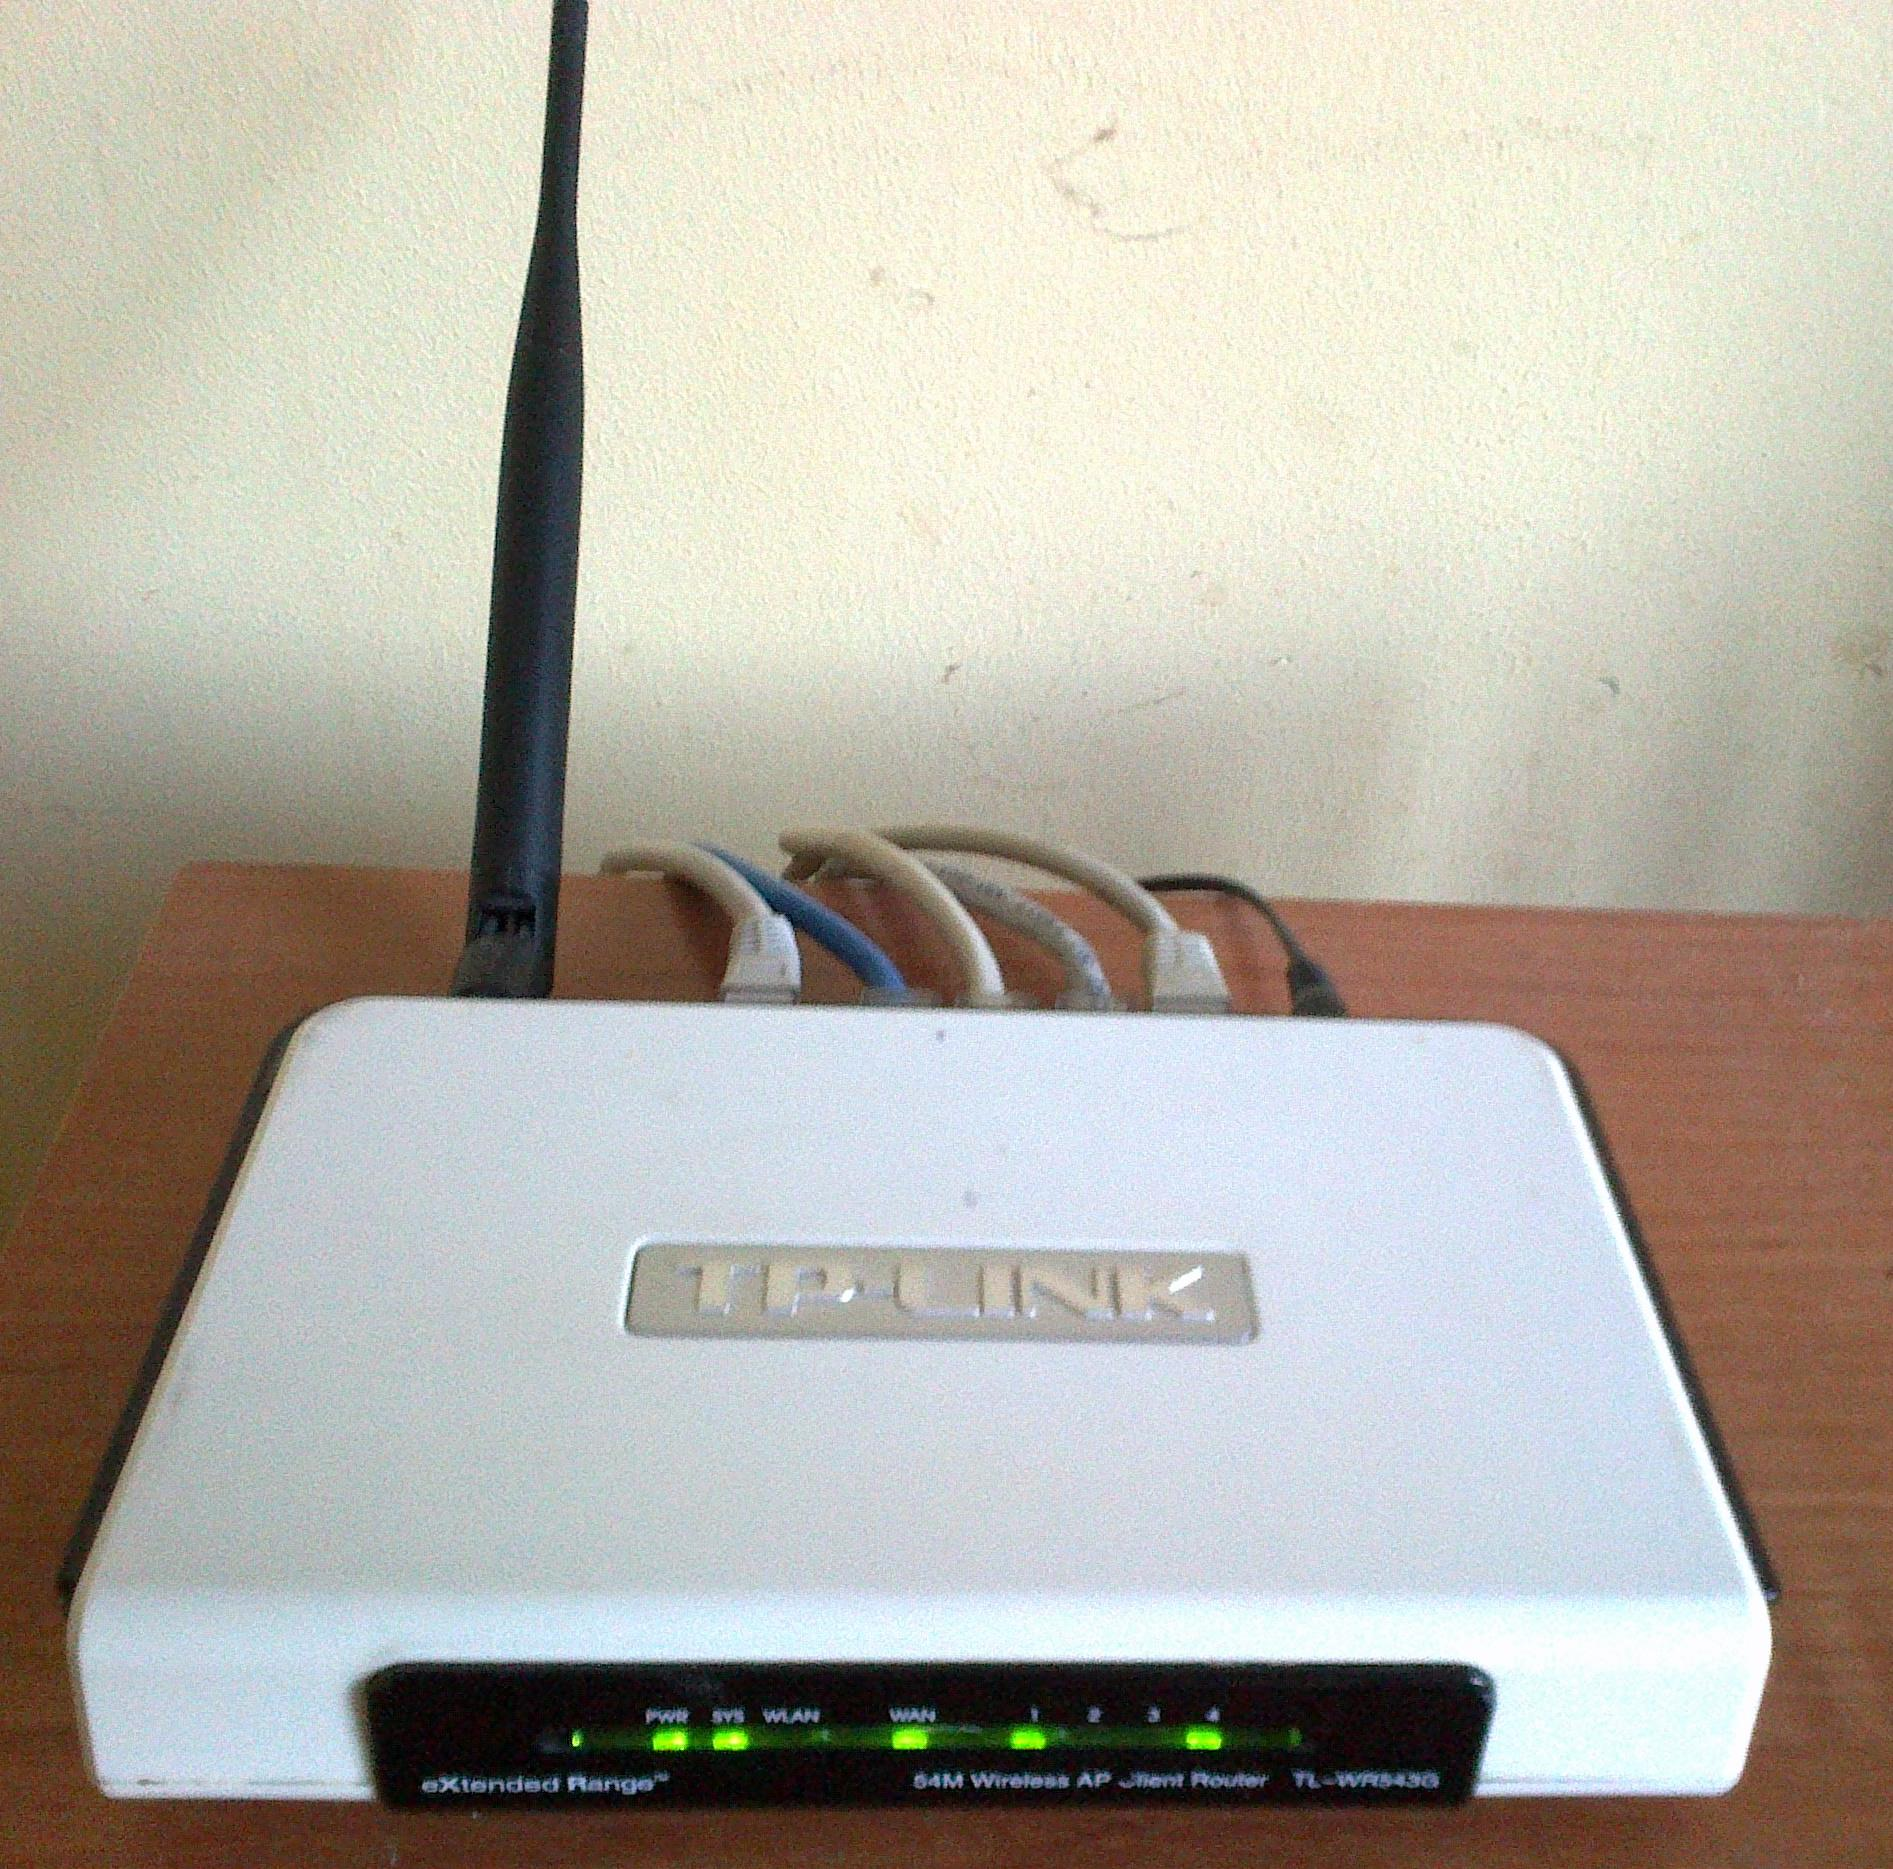 TP-LINK TL-WR543G ROUTER DRIVERS WINDOWS 7